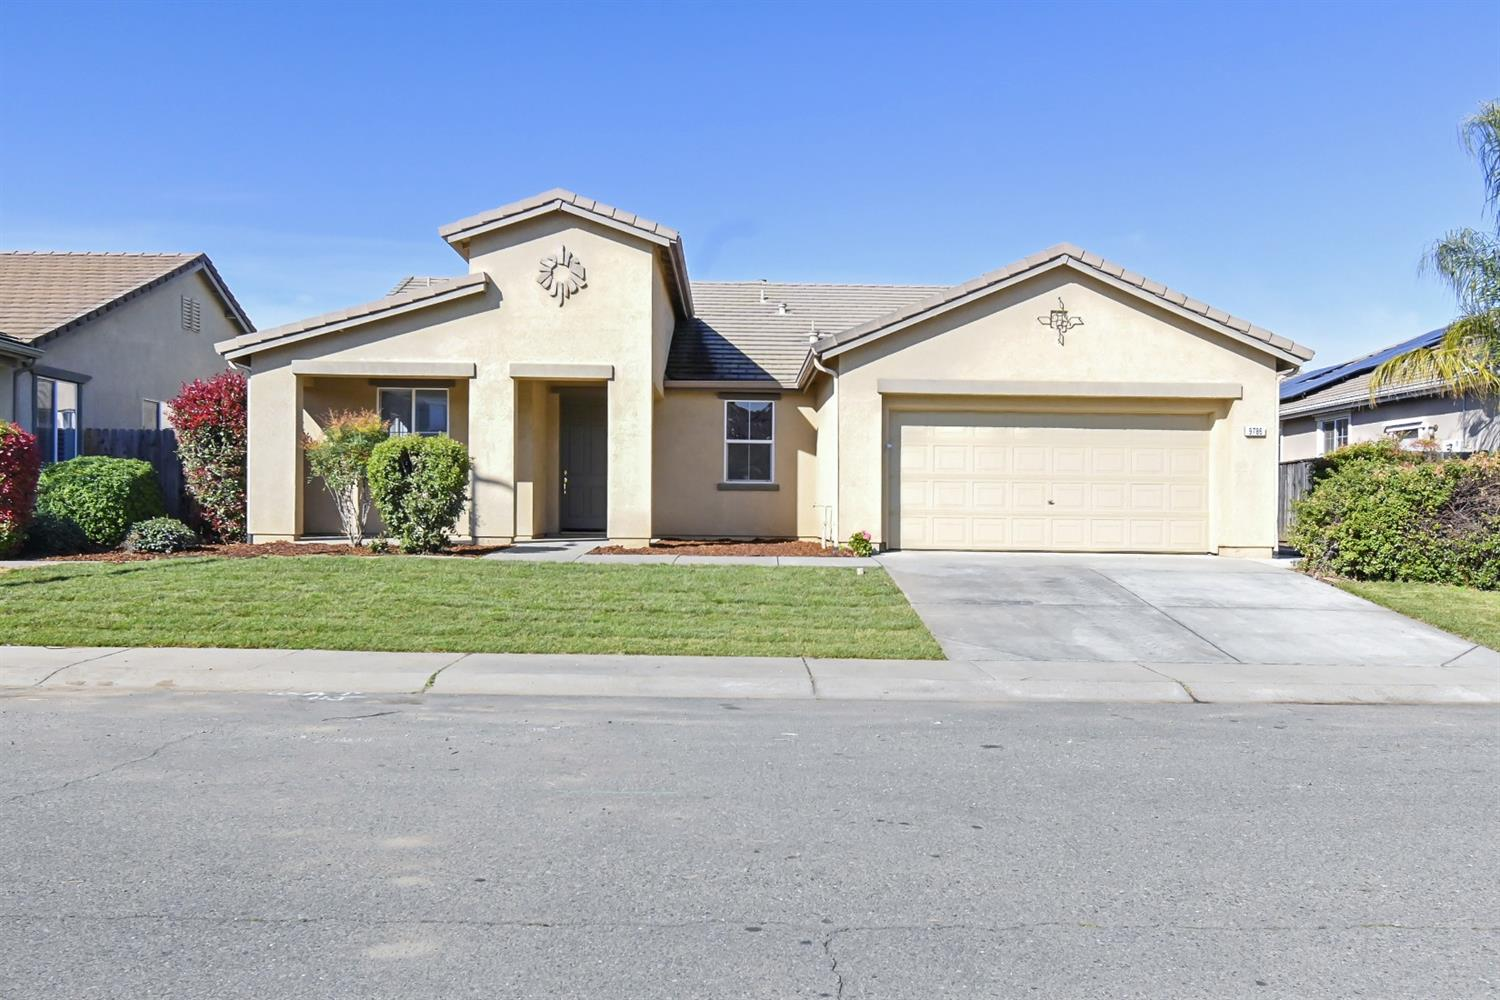 Looking for a move in ready home in well desired area of Live Oak in a cul-de-sac, look no further. Come and check out this beautiful 4 bed, 2 bath home with freshly painted interior, new carpet flooring, window blinds, open kitchen with island and granite counter tops. Must see to appreciate!!!